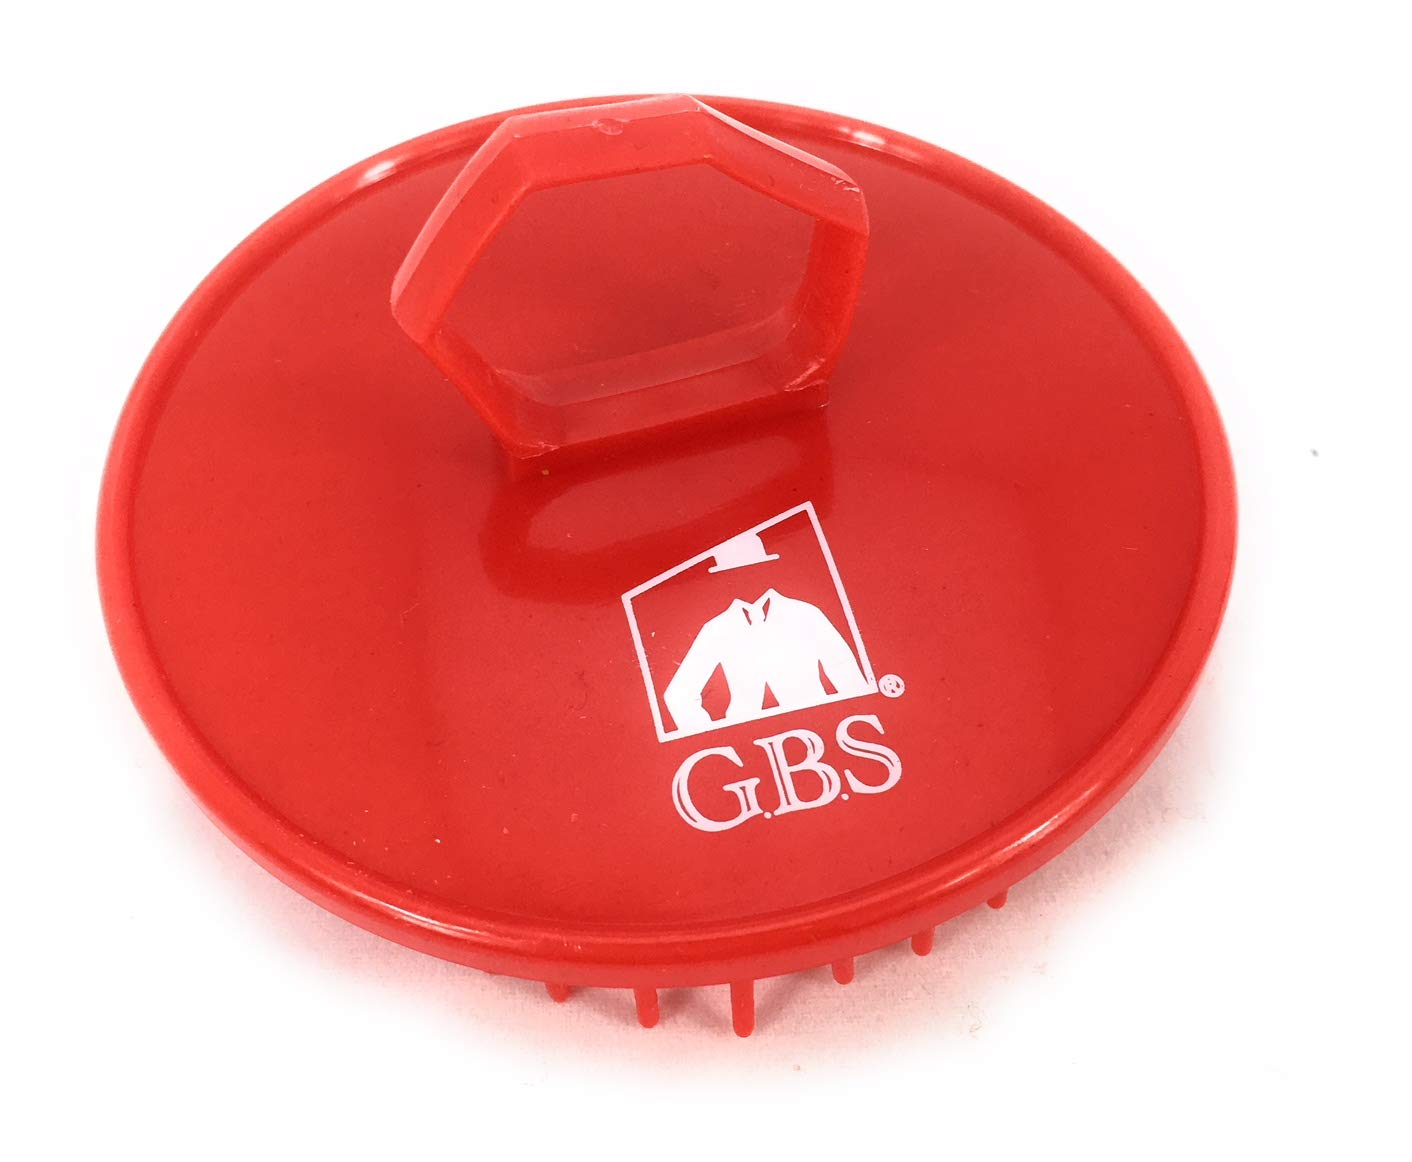 GBS Shower Shampoo Massage Brush No.100 - Single Red Brush - Best Scalp Shower Head Scrubber Promotes for Hair Growth. Multi Use for Women Men Beard and Pet Grooming Brushes